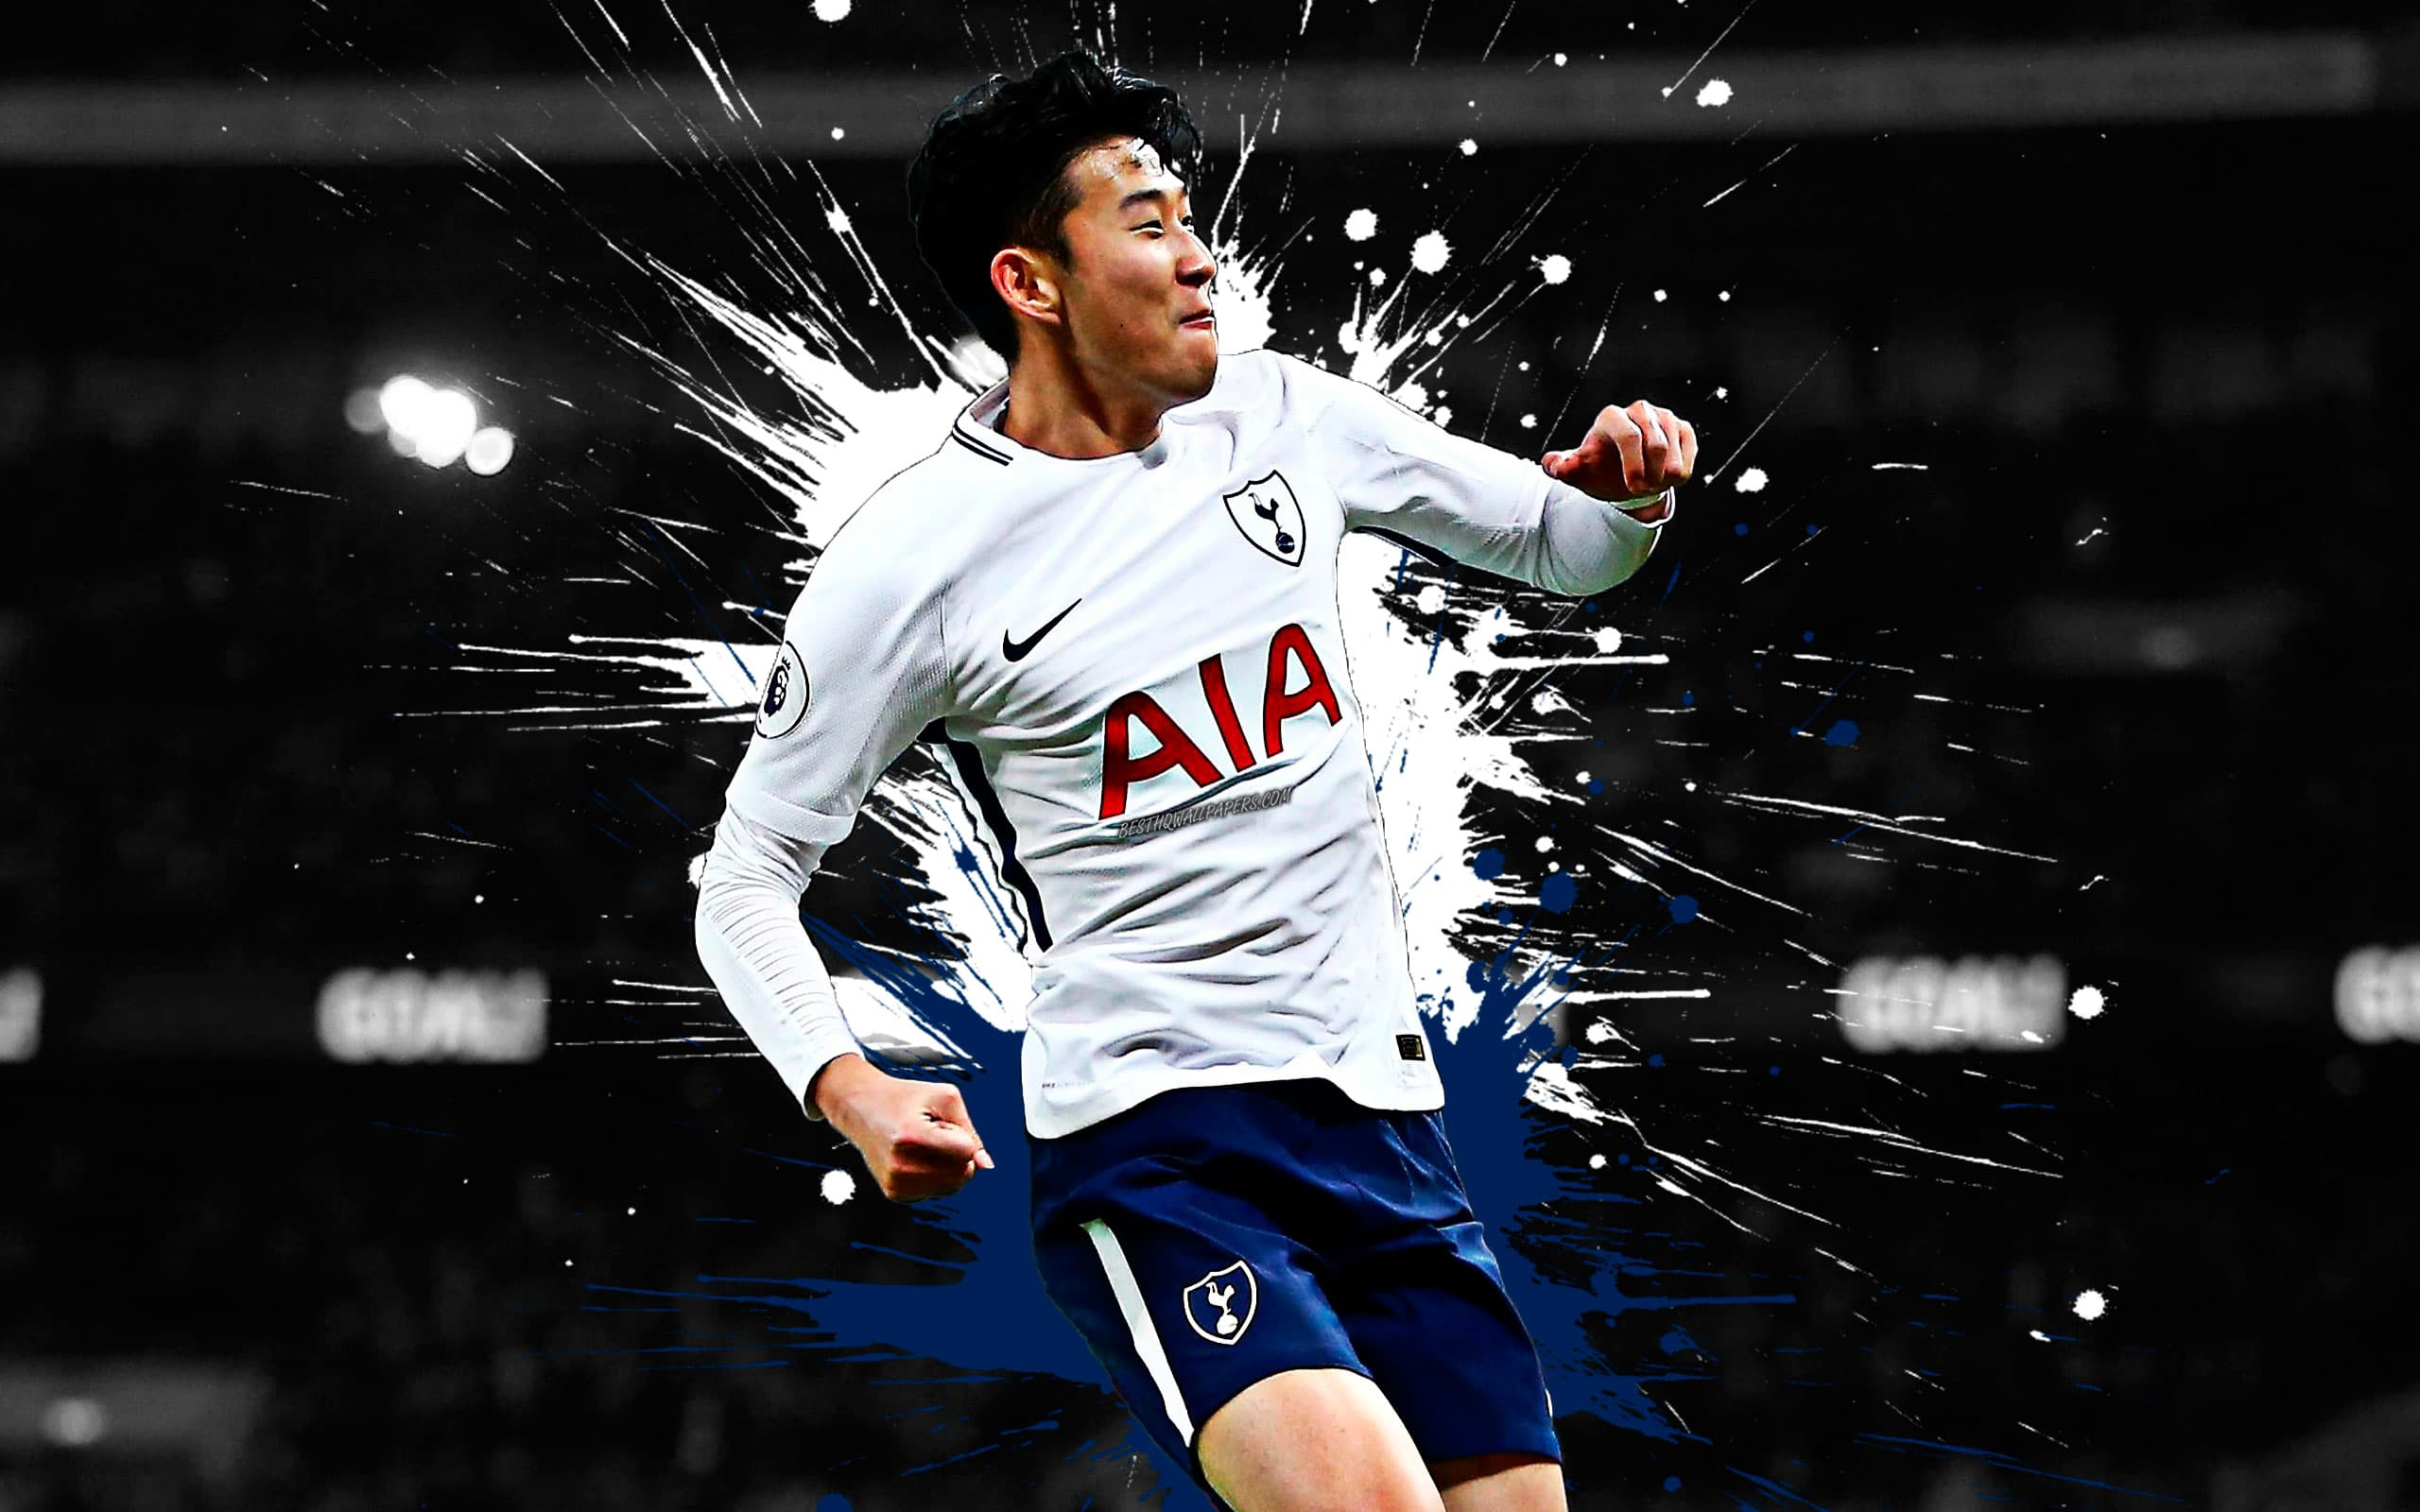 Son Heung-min Korea, South Professional Footballer